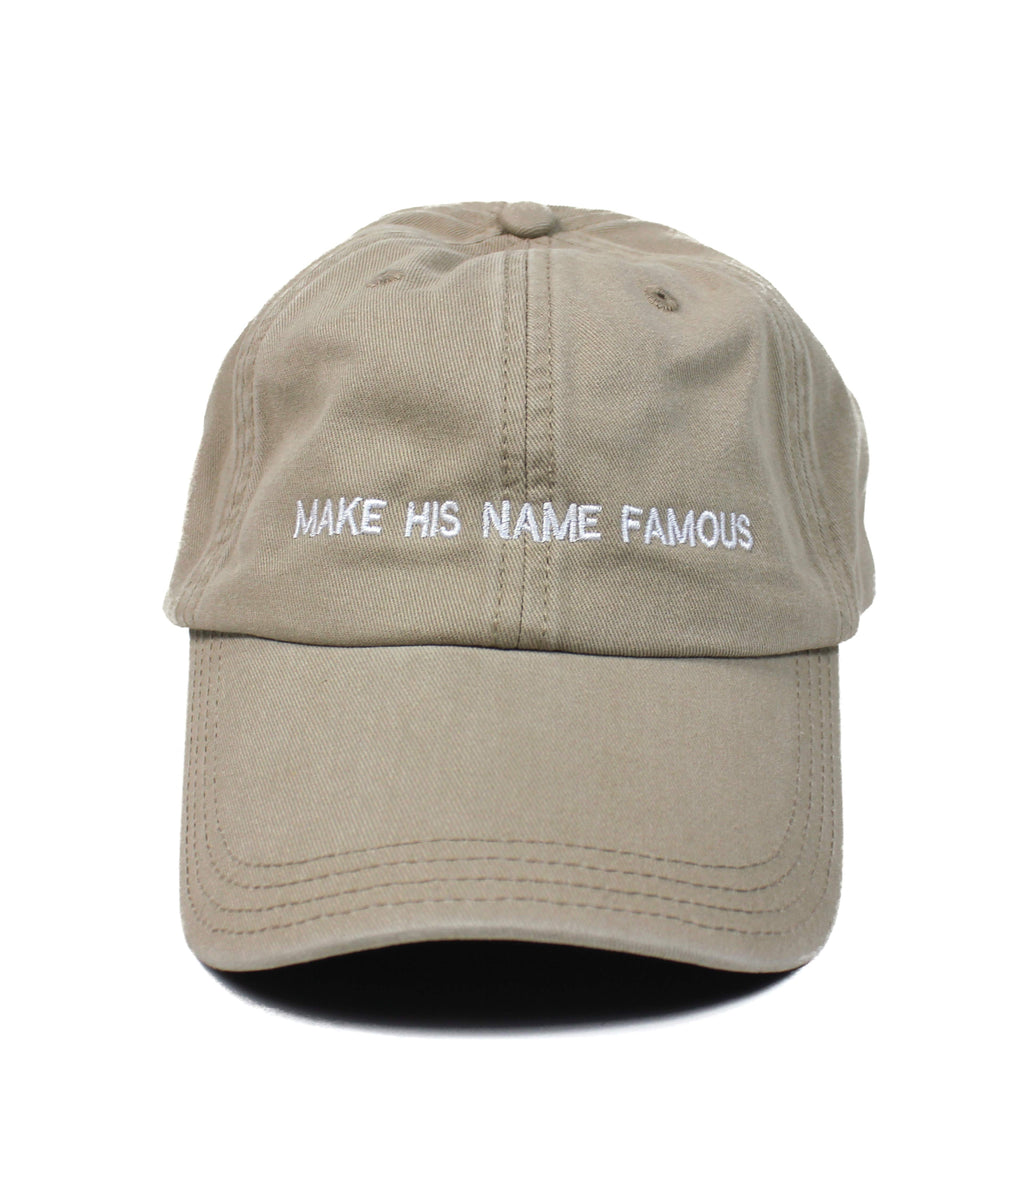 MAKE HIS NAME FAMOUS TAN DAD CAP